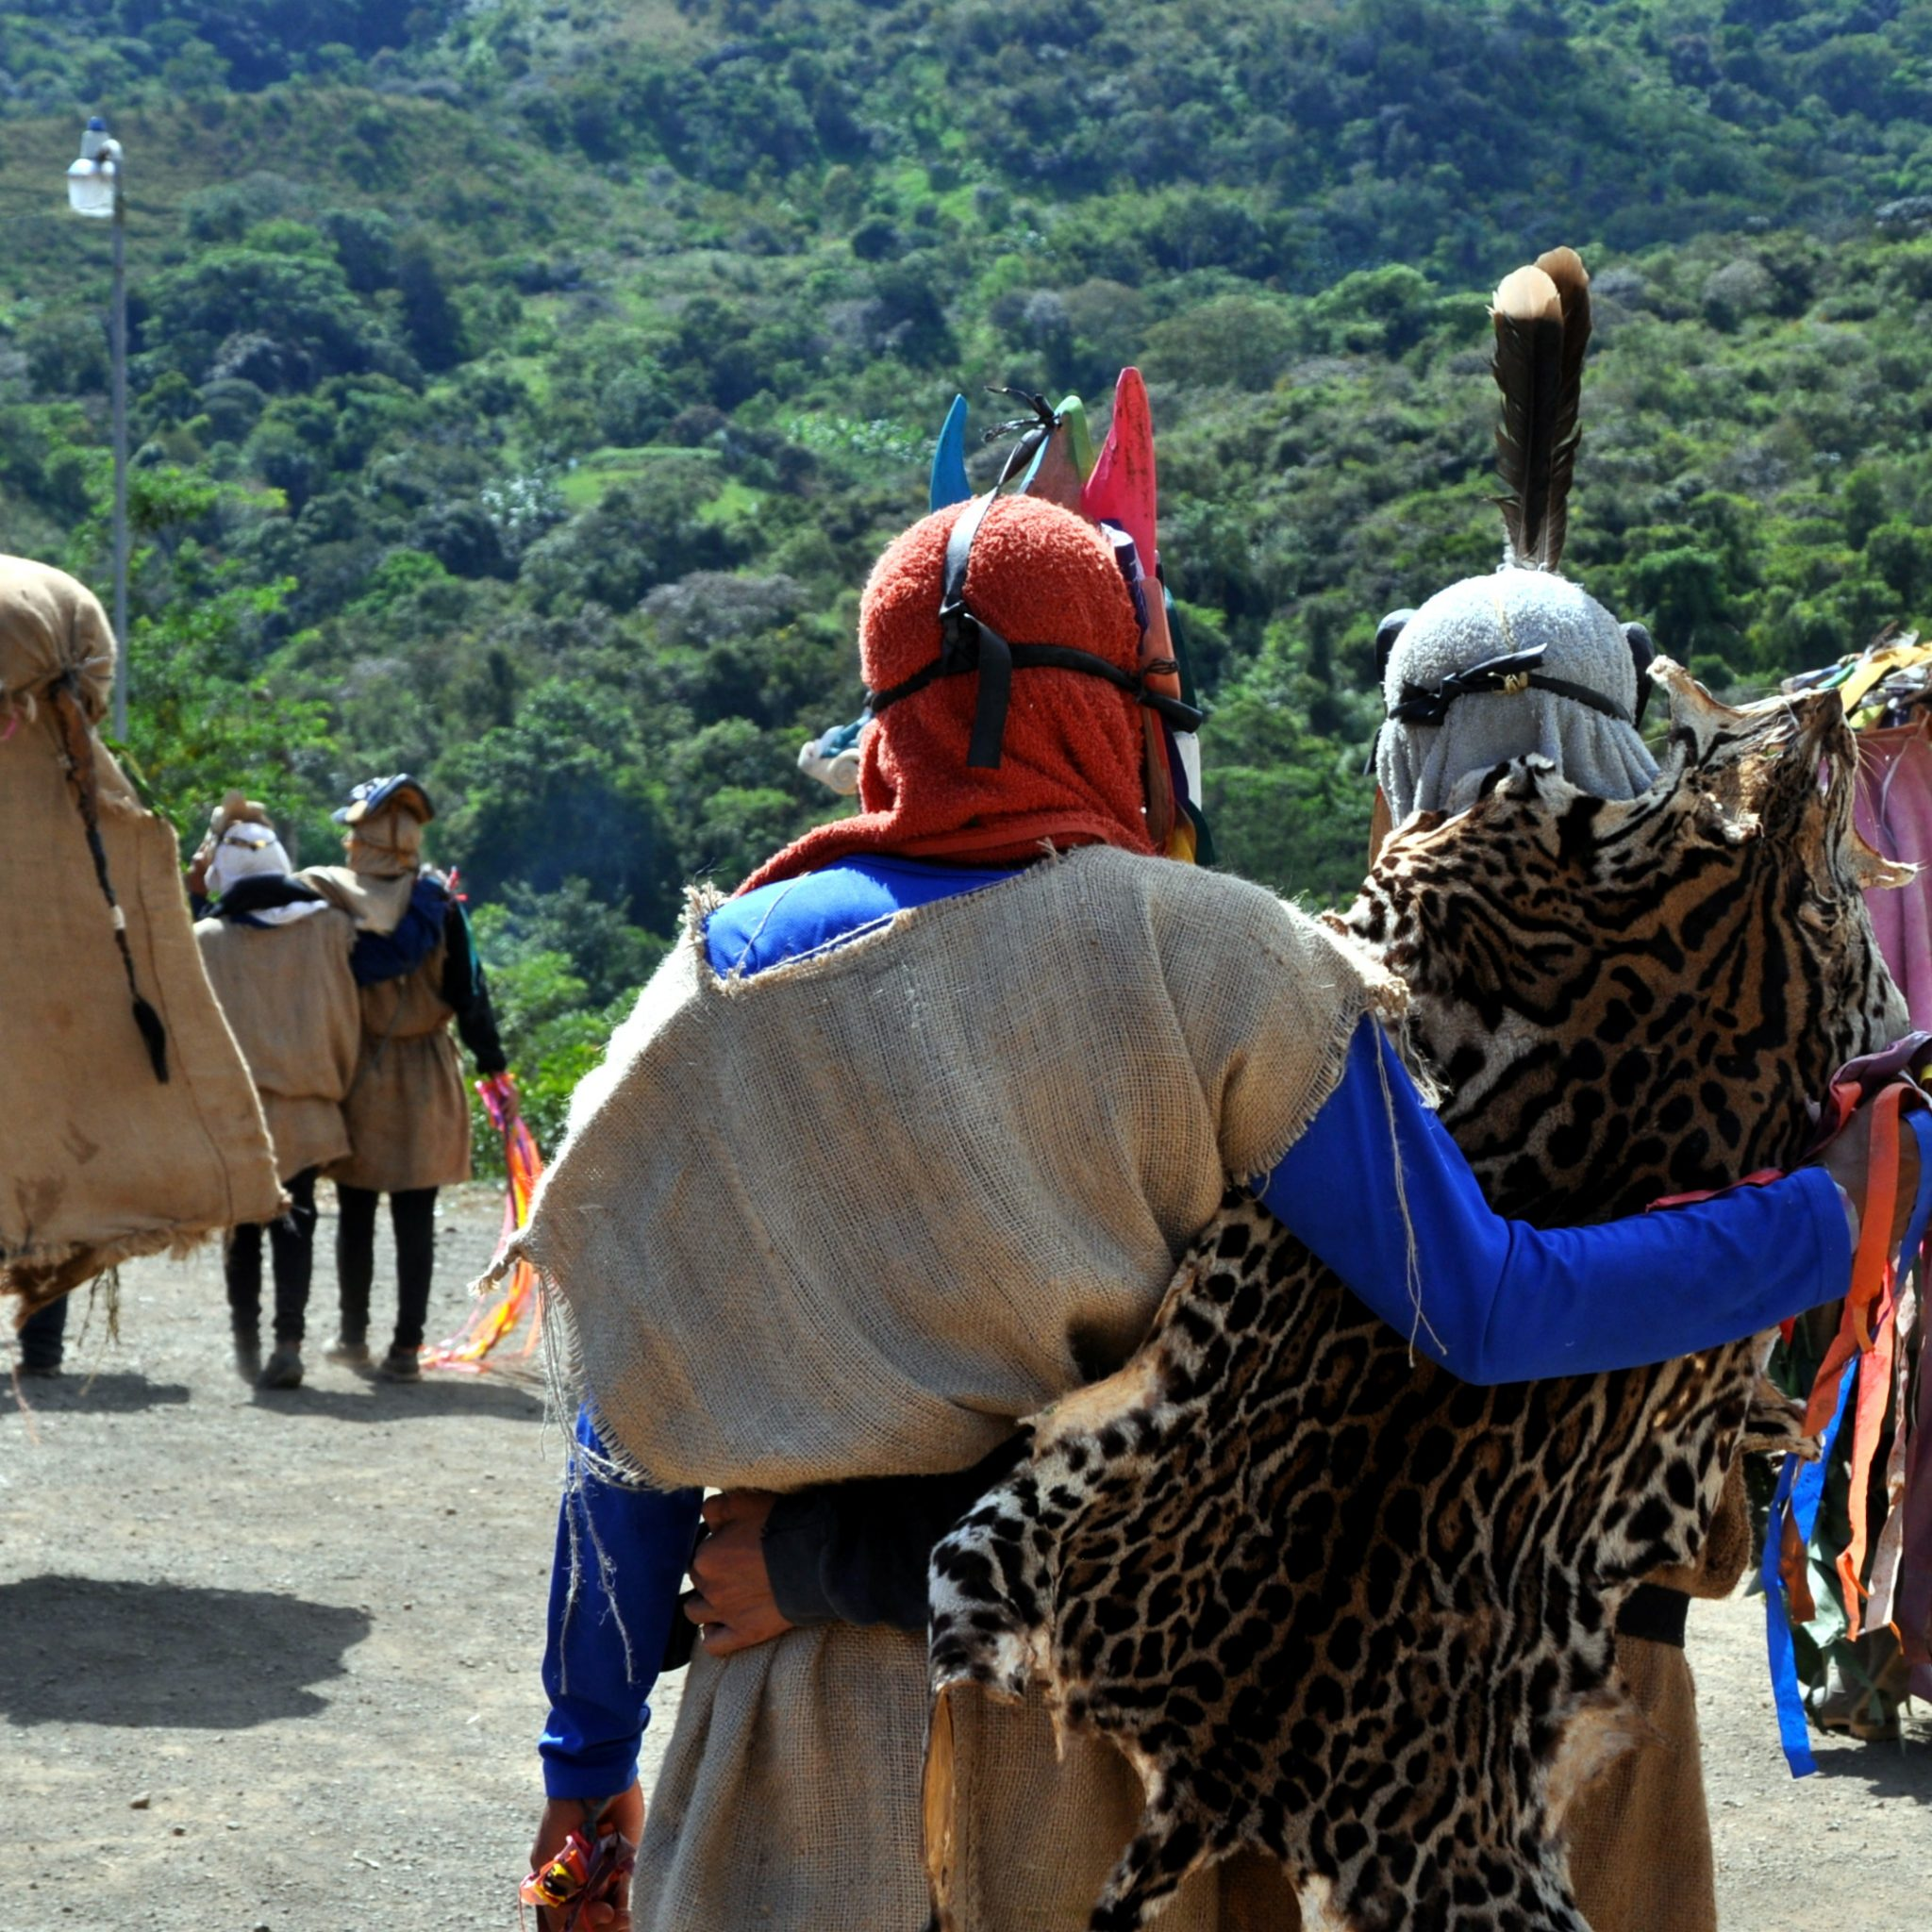 Diablitos in their elaborate costumes chasing the toro.